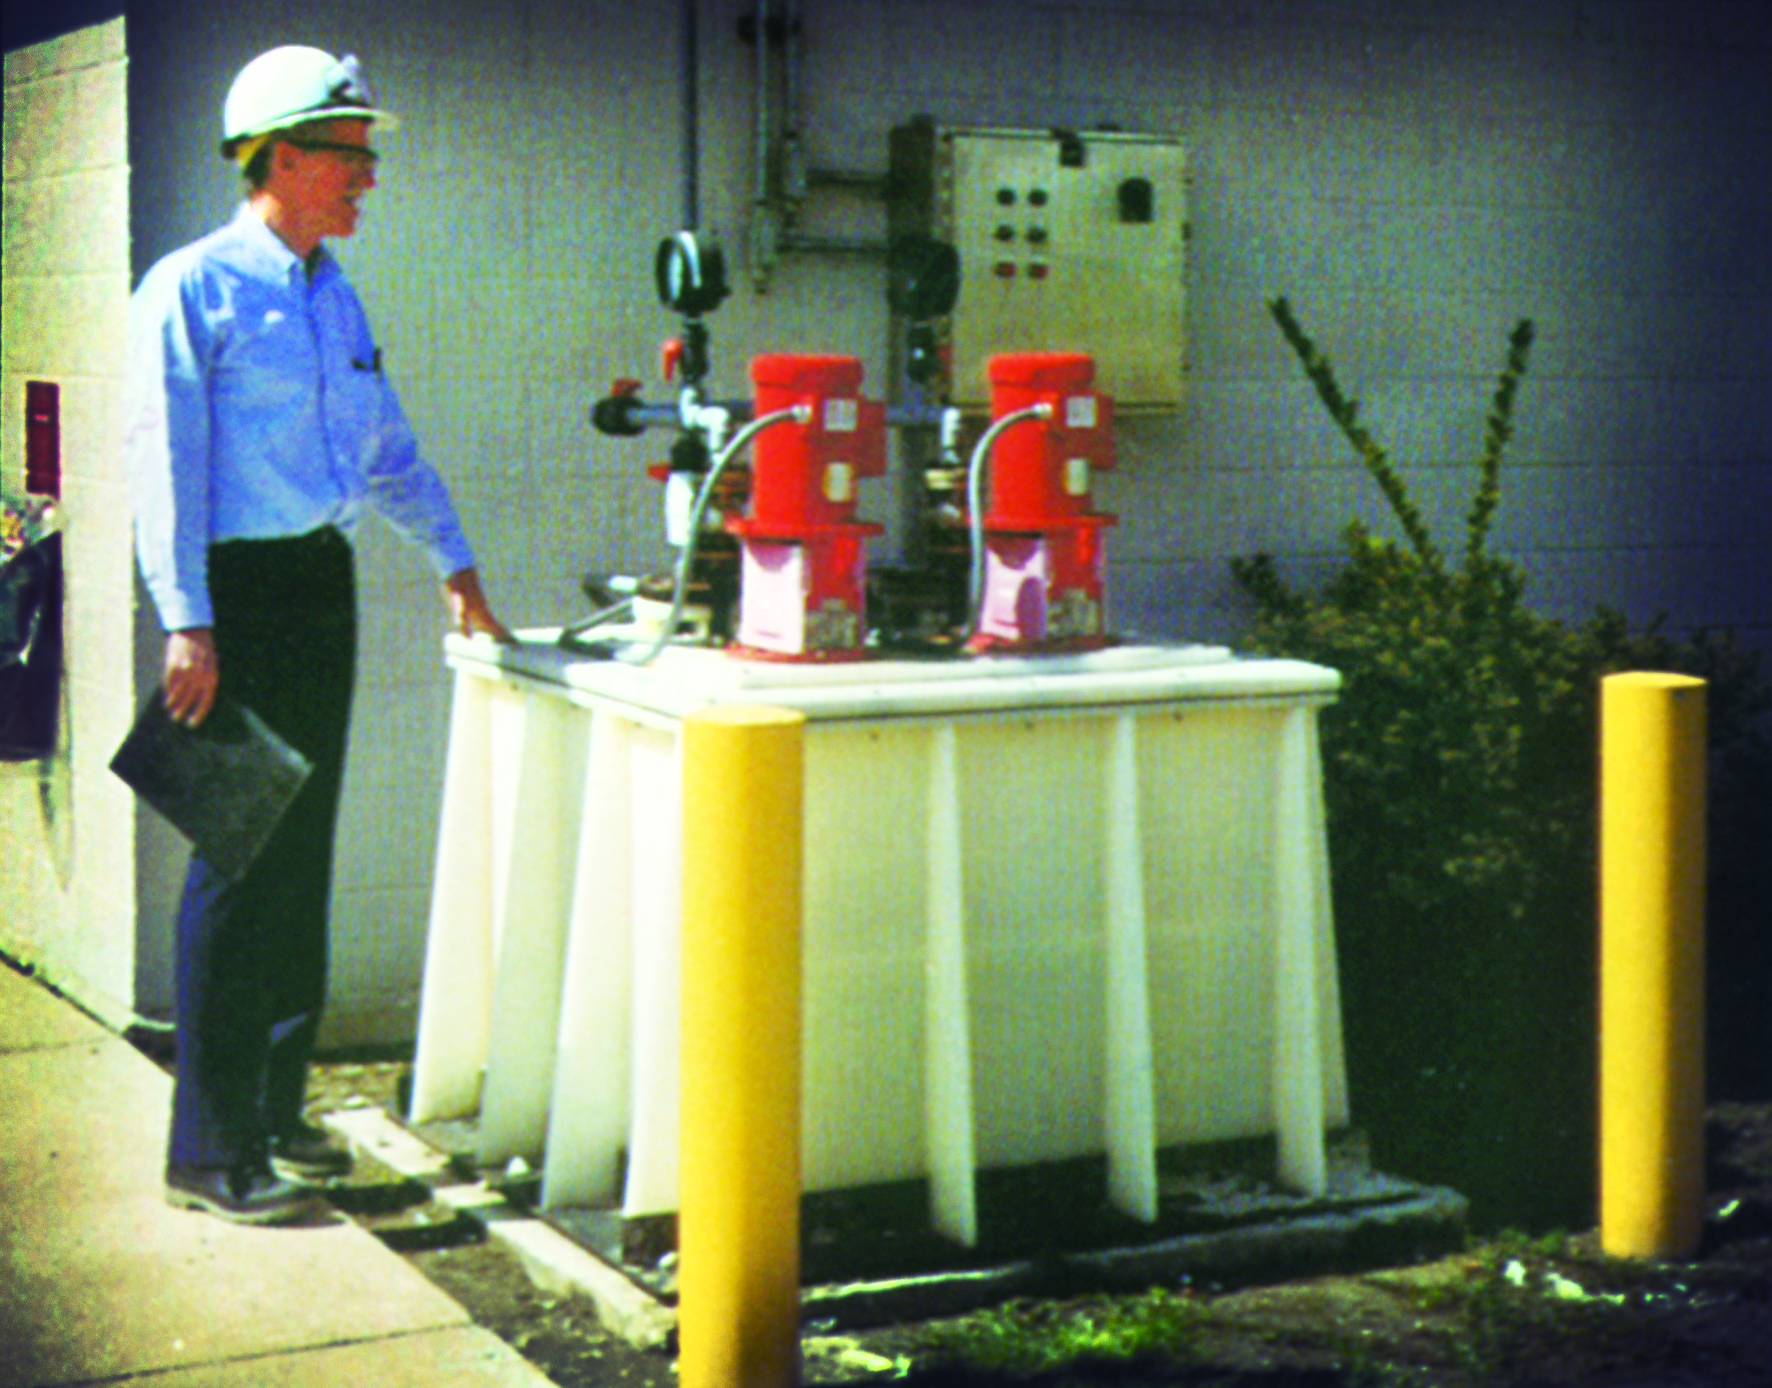 Disposal System Avoids Soil & Groundwater Contamination